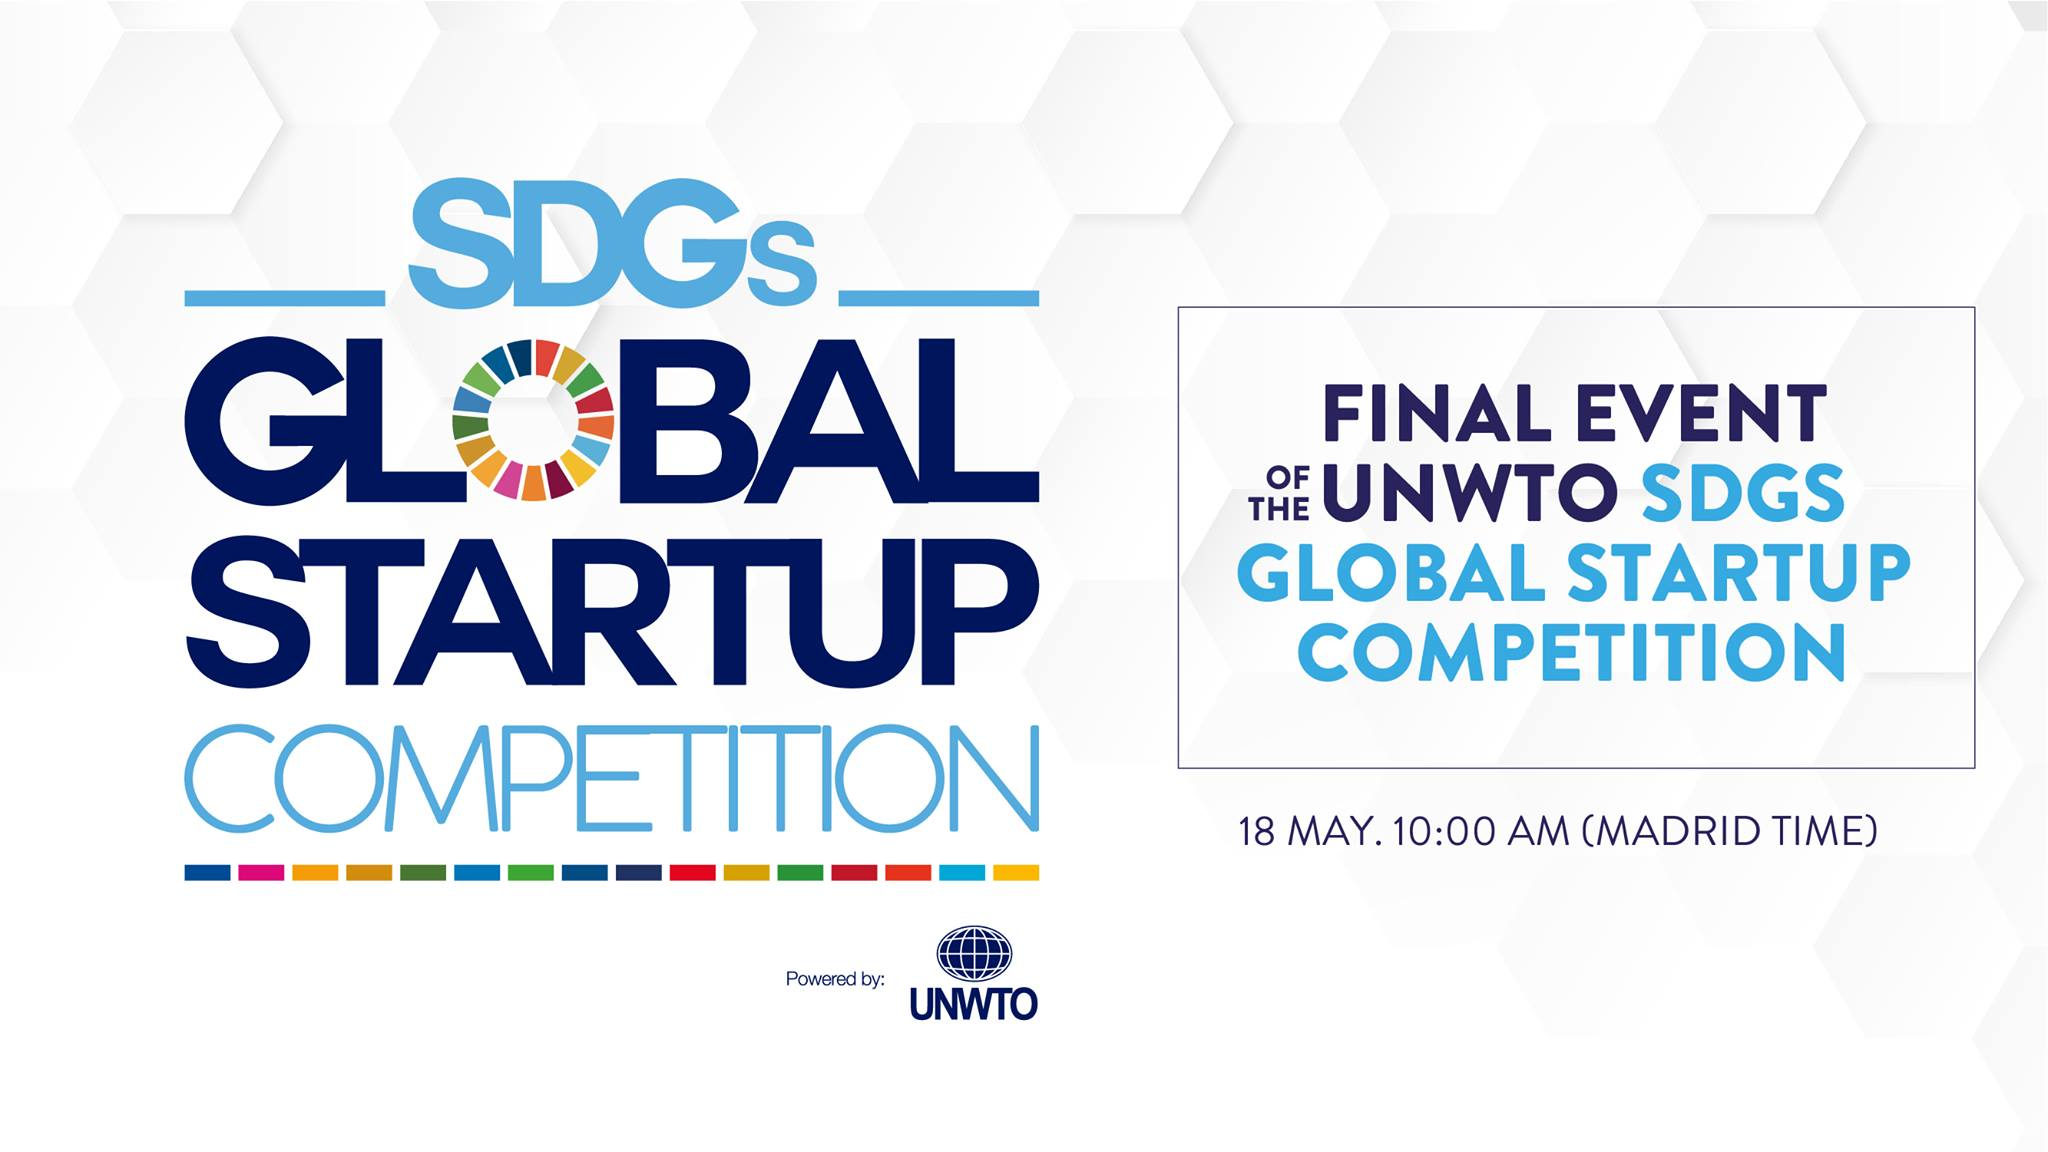 We're Going to The Final Event of The UNWTO SDG's Global Startup Competition